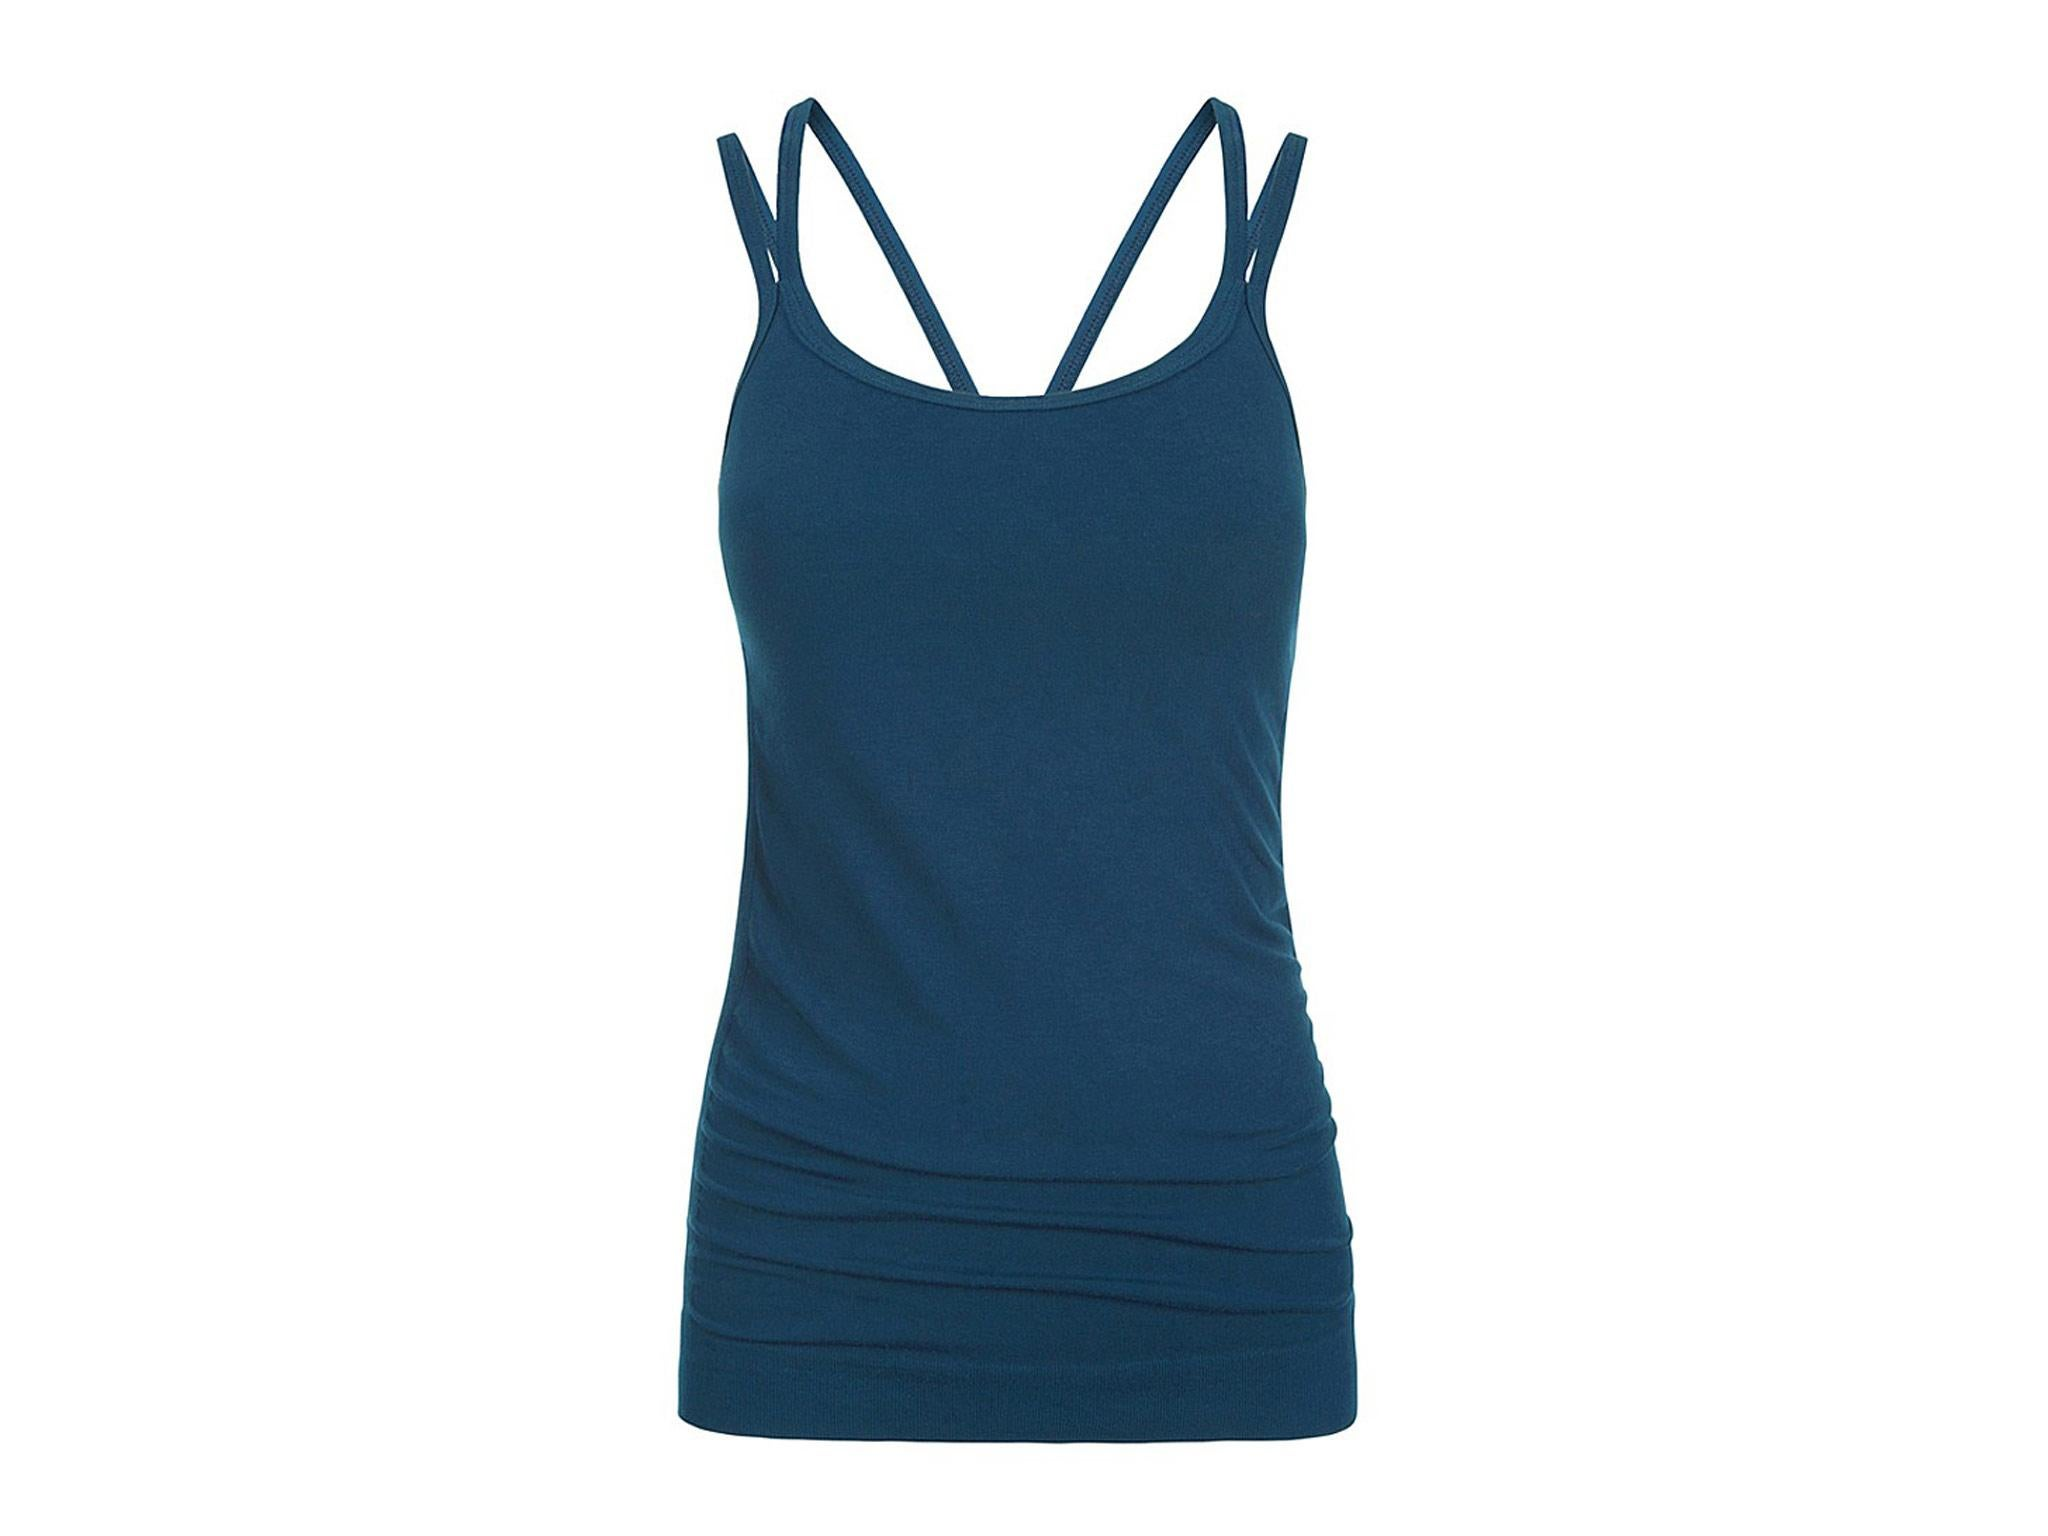 9 Best Yoga Tops For Women The Independent Torch Tunik Blue Black Navy Xl Sweaty Betty Namaska Bamboo Padded Vest 50